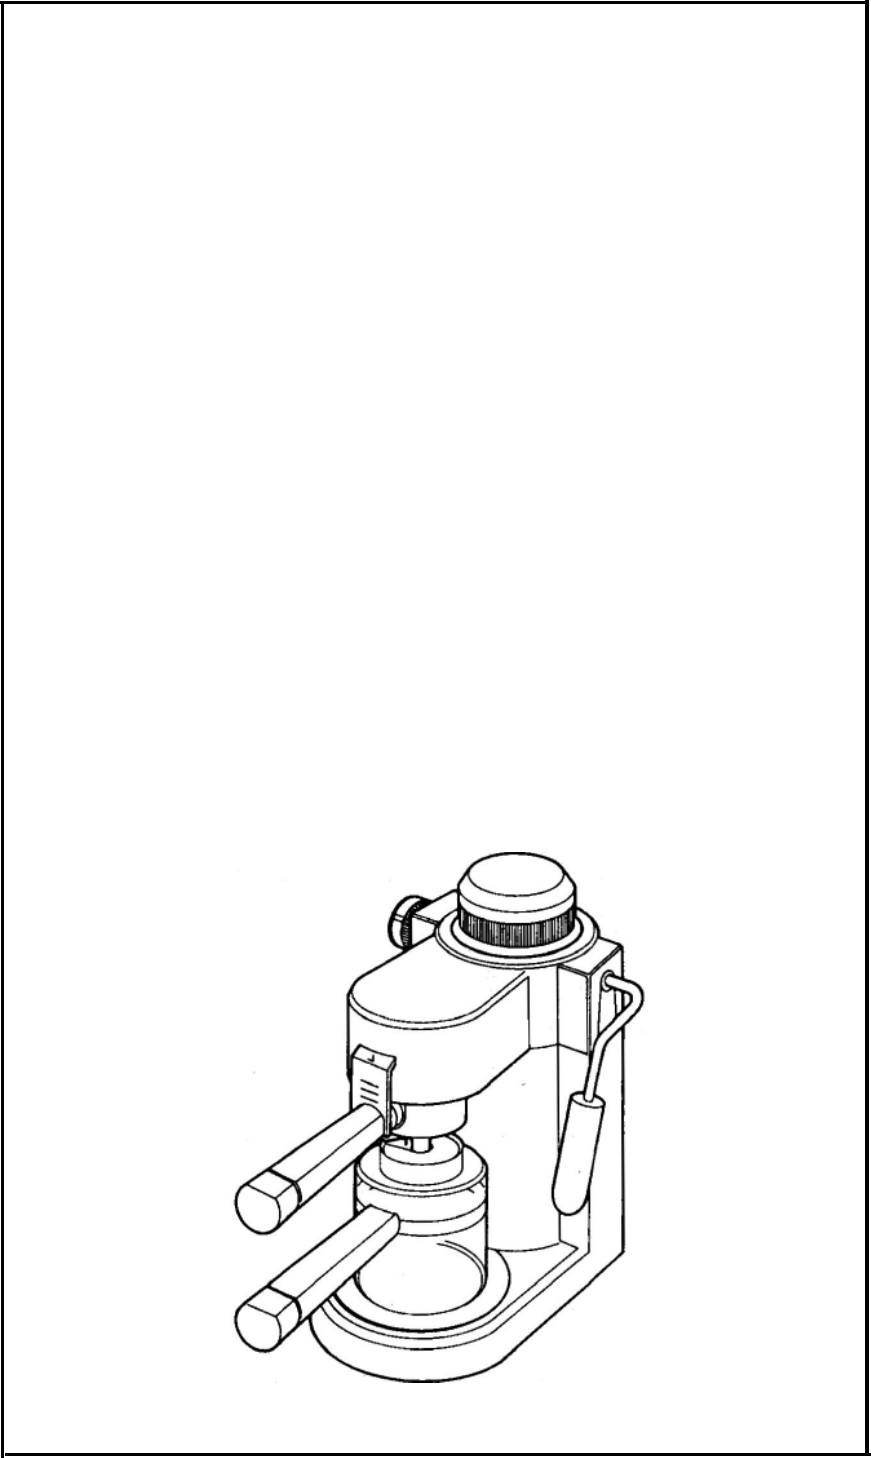 mr coffee 4 cup coffee maker instructions